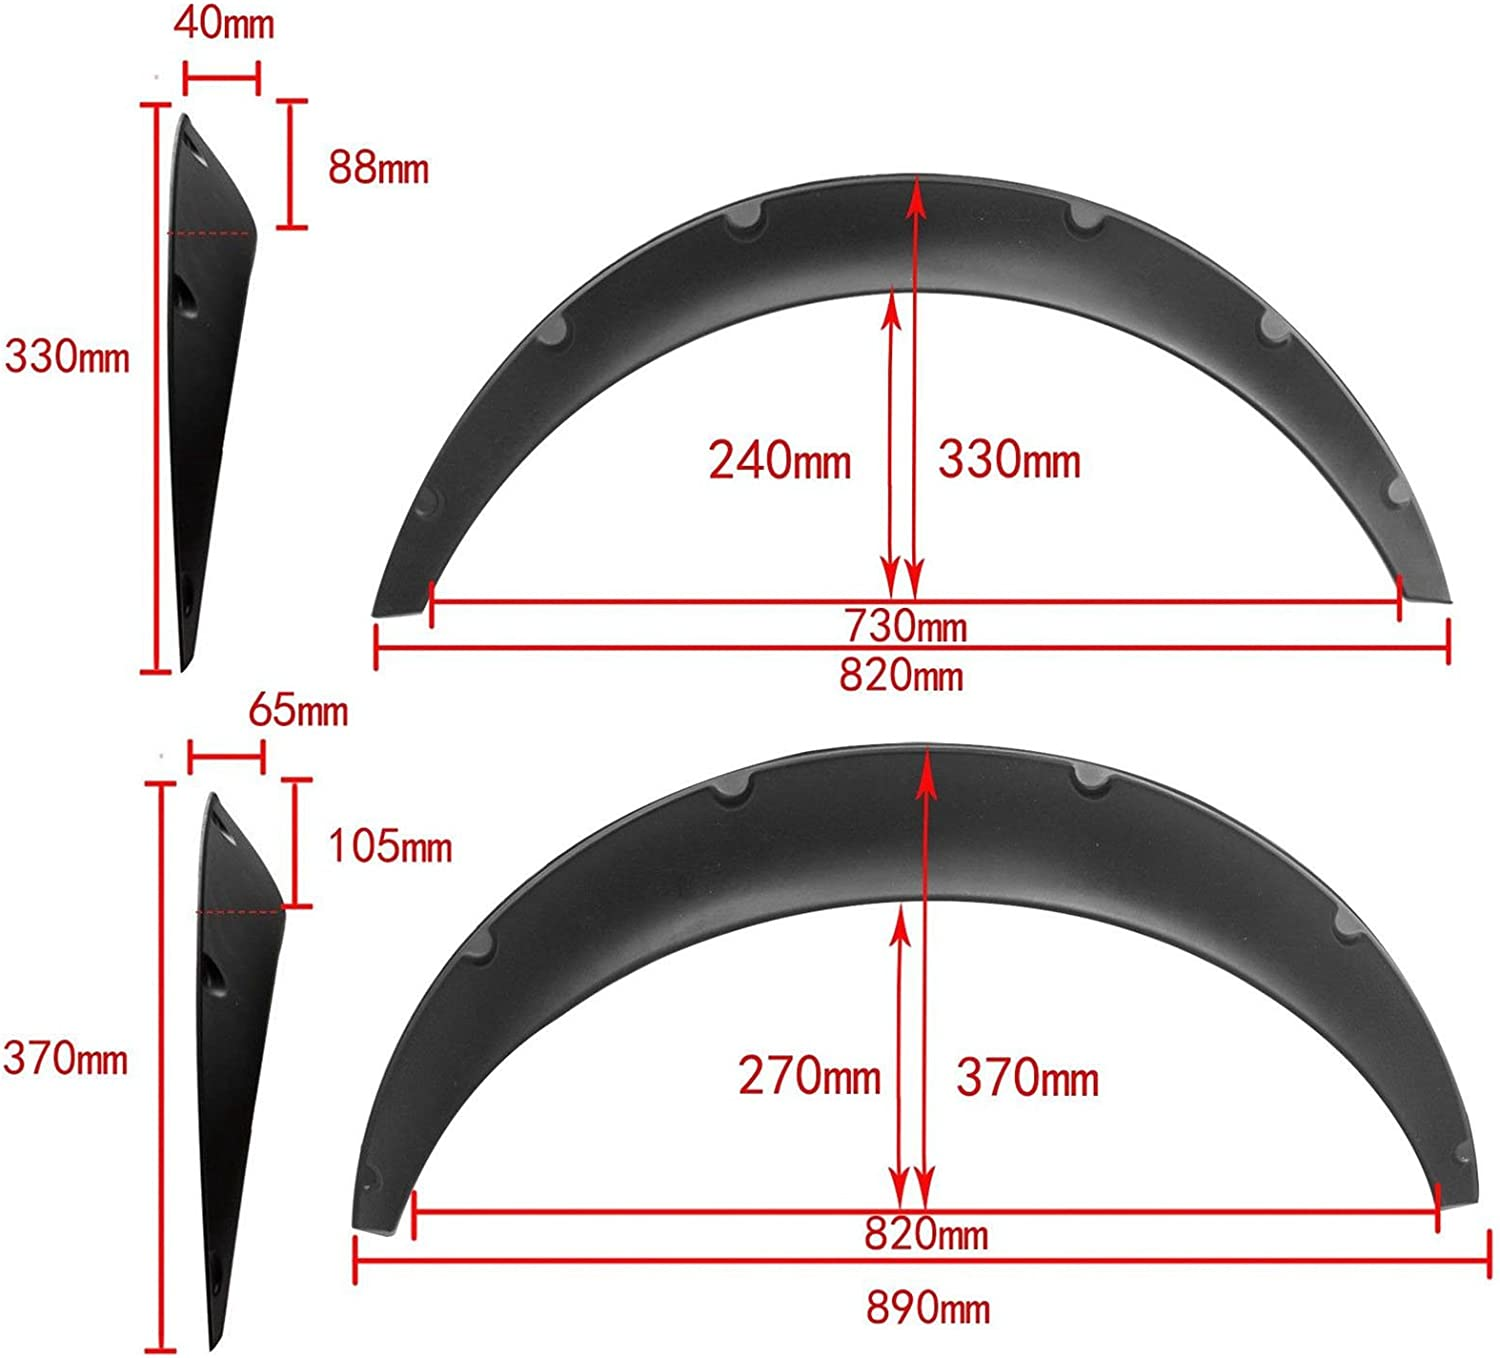 840mm Universal Flexible Car Fender Flares Extra Wide Body Wheel Arches Kit Pack of 4